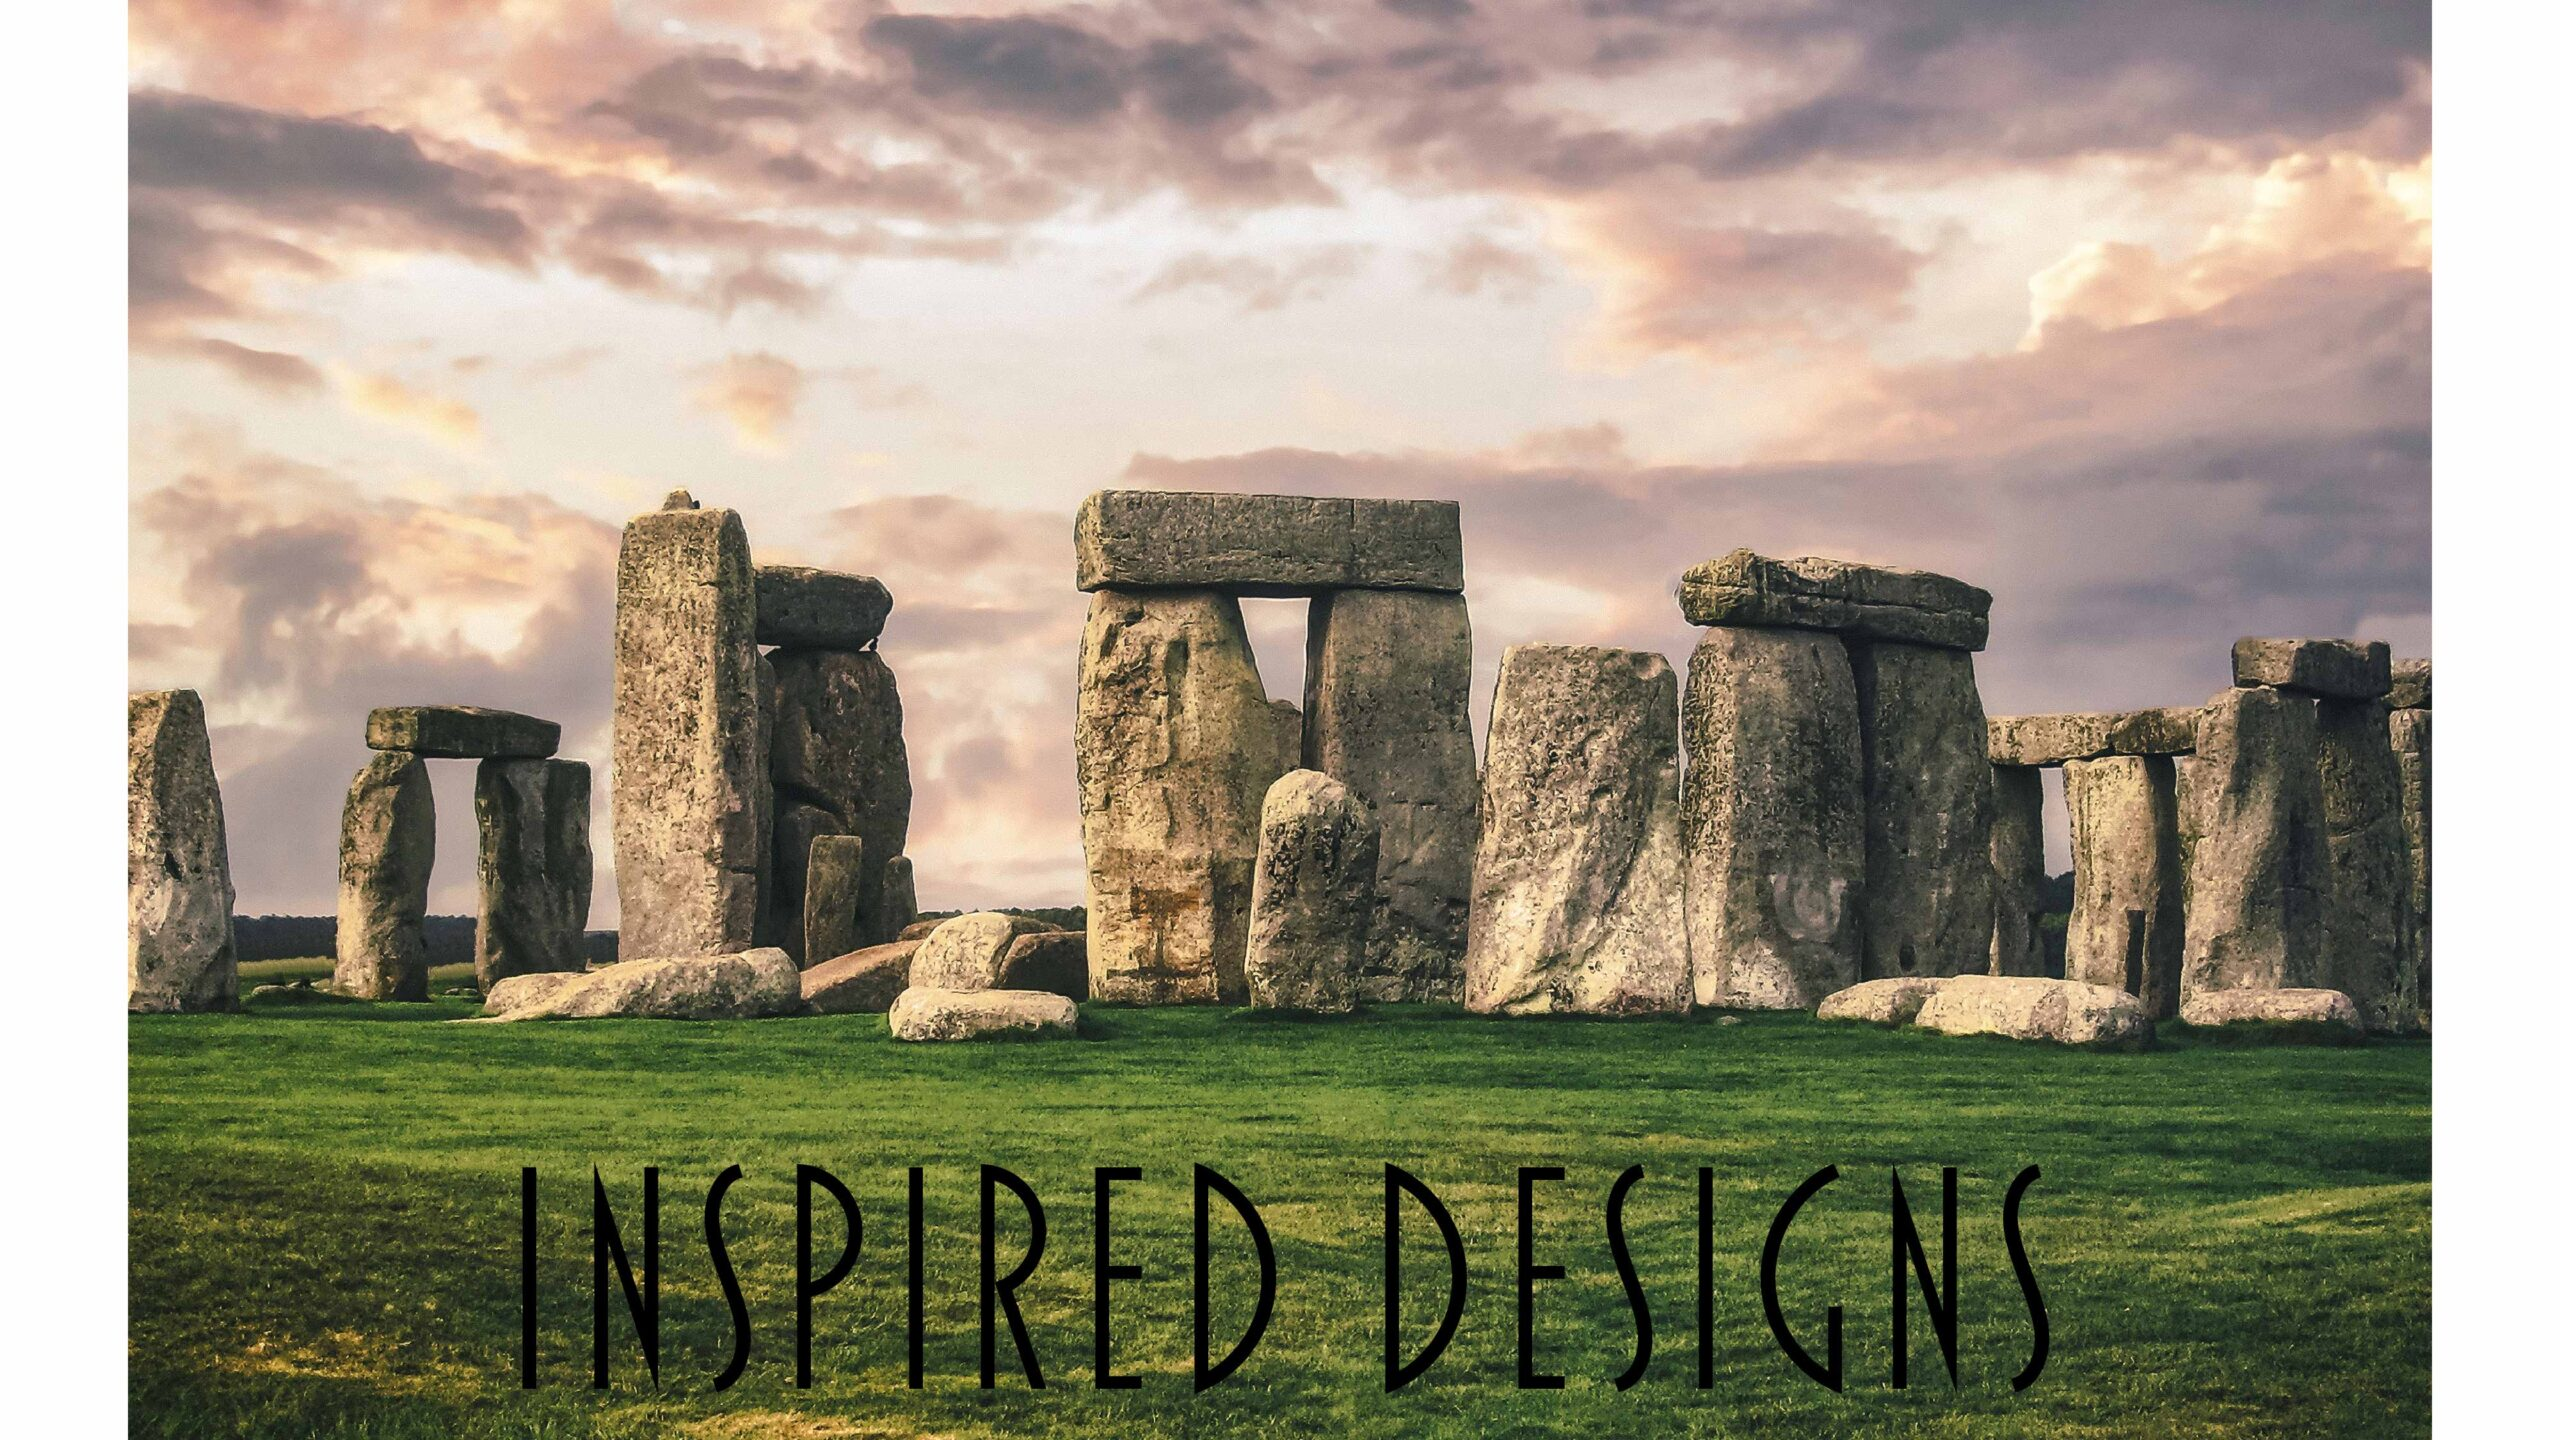 Stone Henge with Inspired Designs text